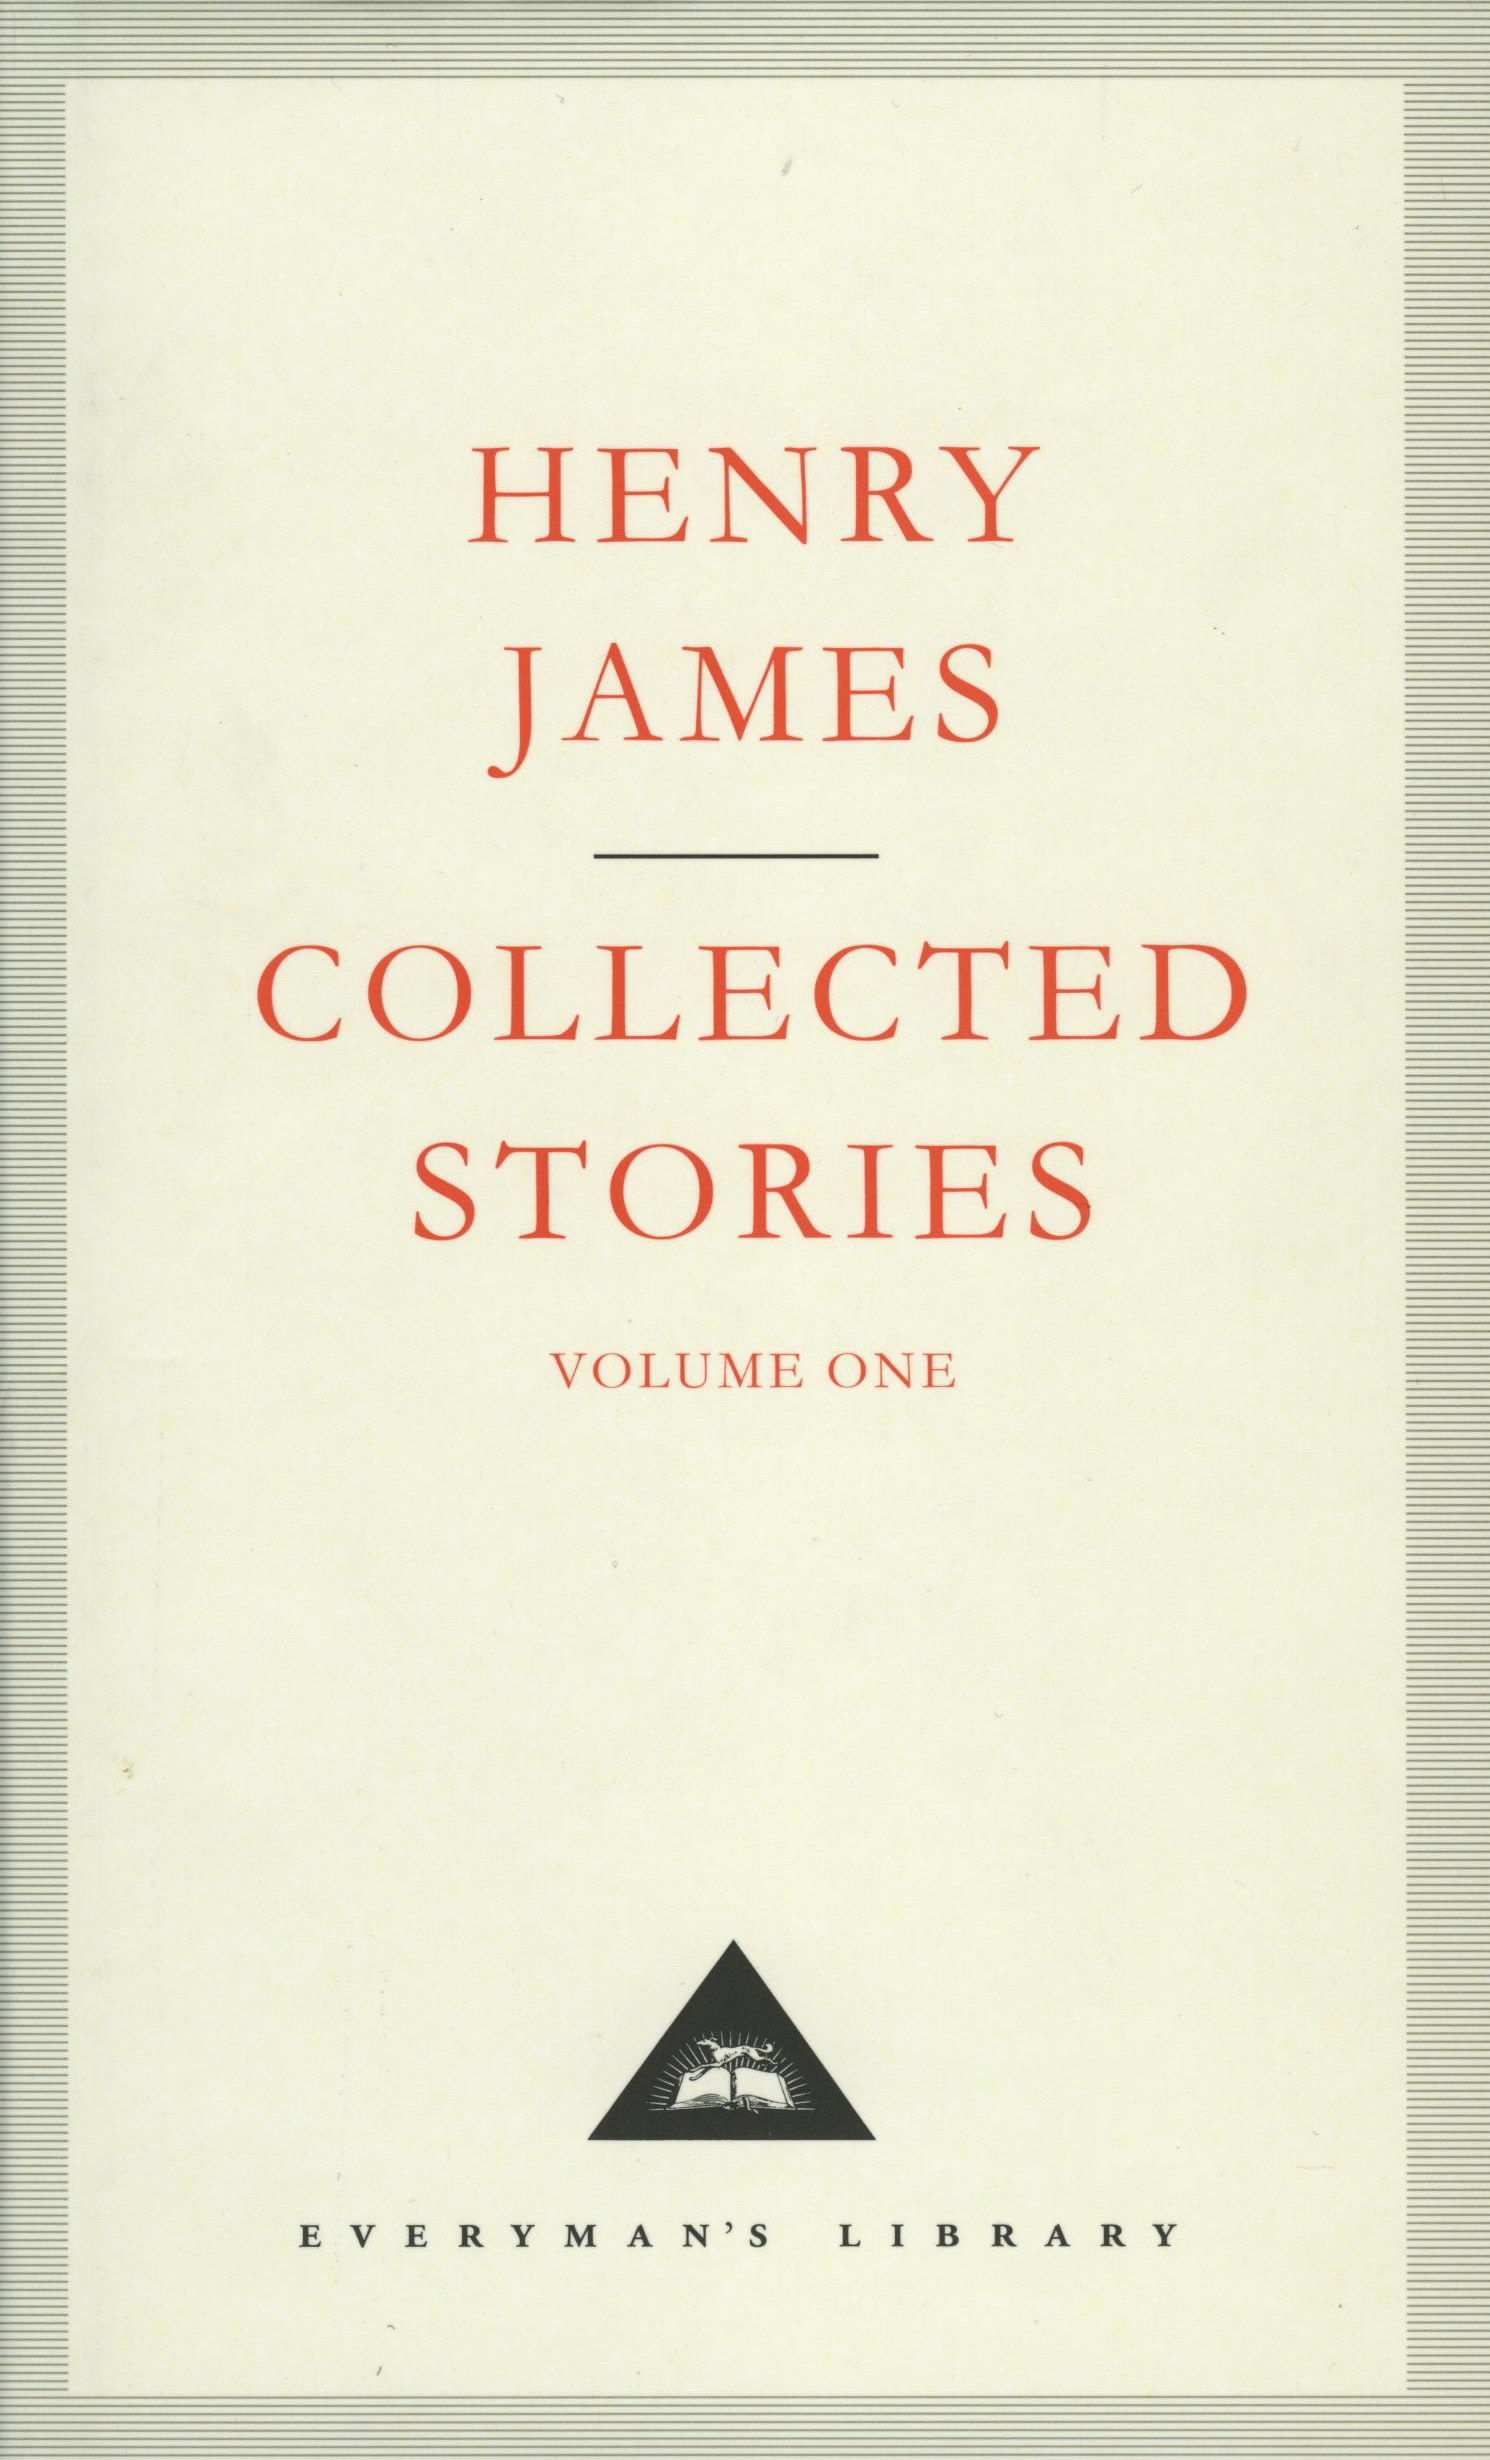 henry james essays in london and elsewhere Travel essays on england into the collection english hours (1905), henry  james retained  the essay london his primary exemplar of consciousness,  the man of  he elsewhere calls the revolutionary    emanation of the  london.